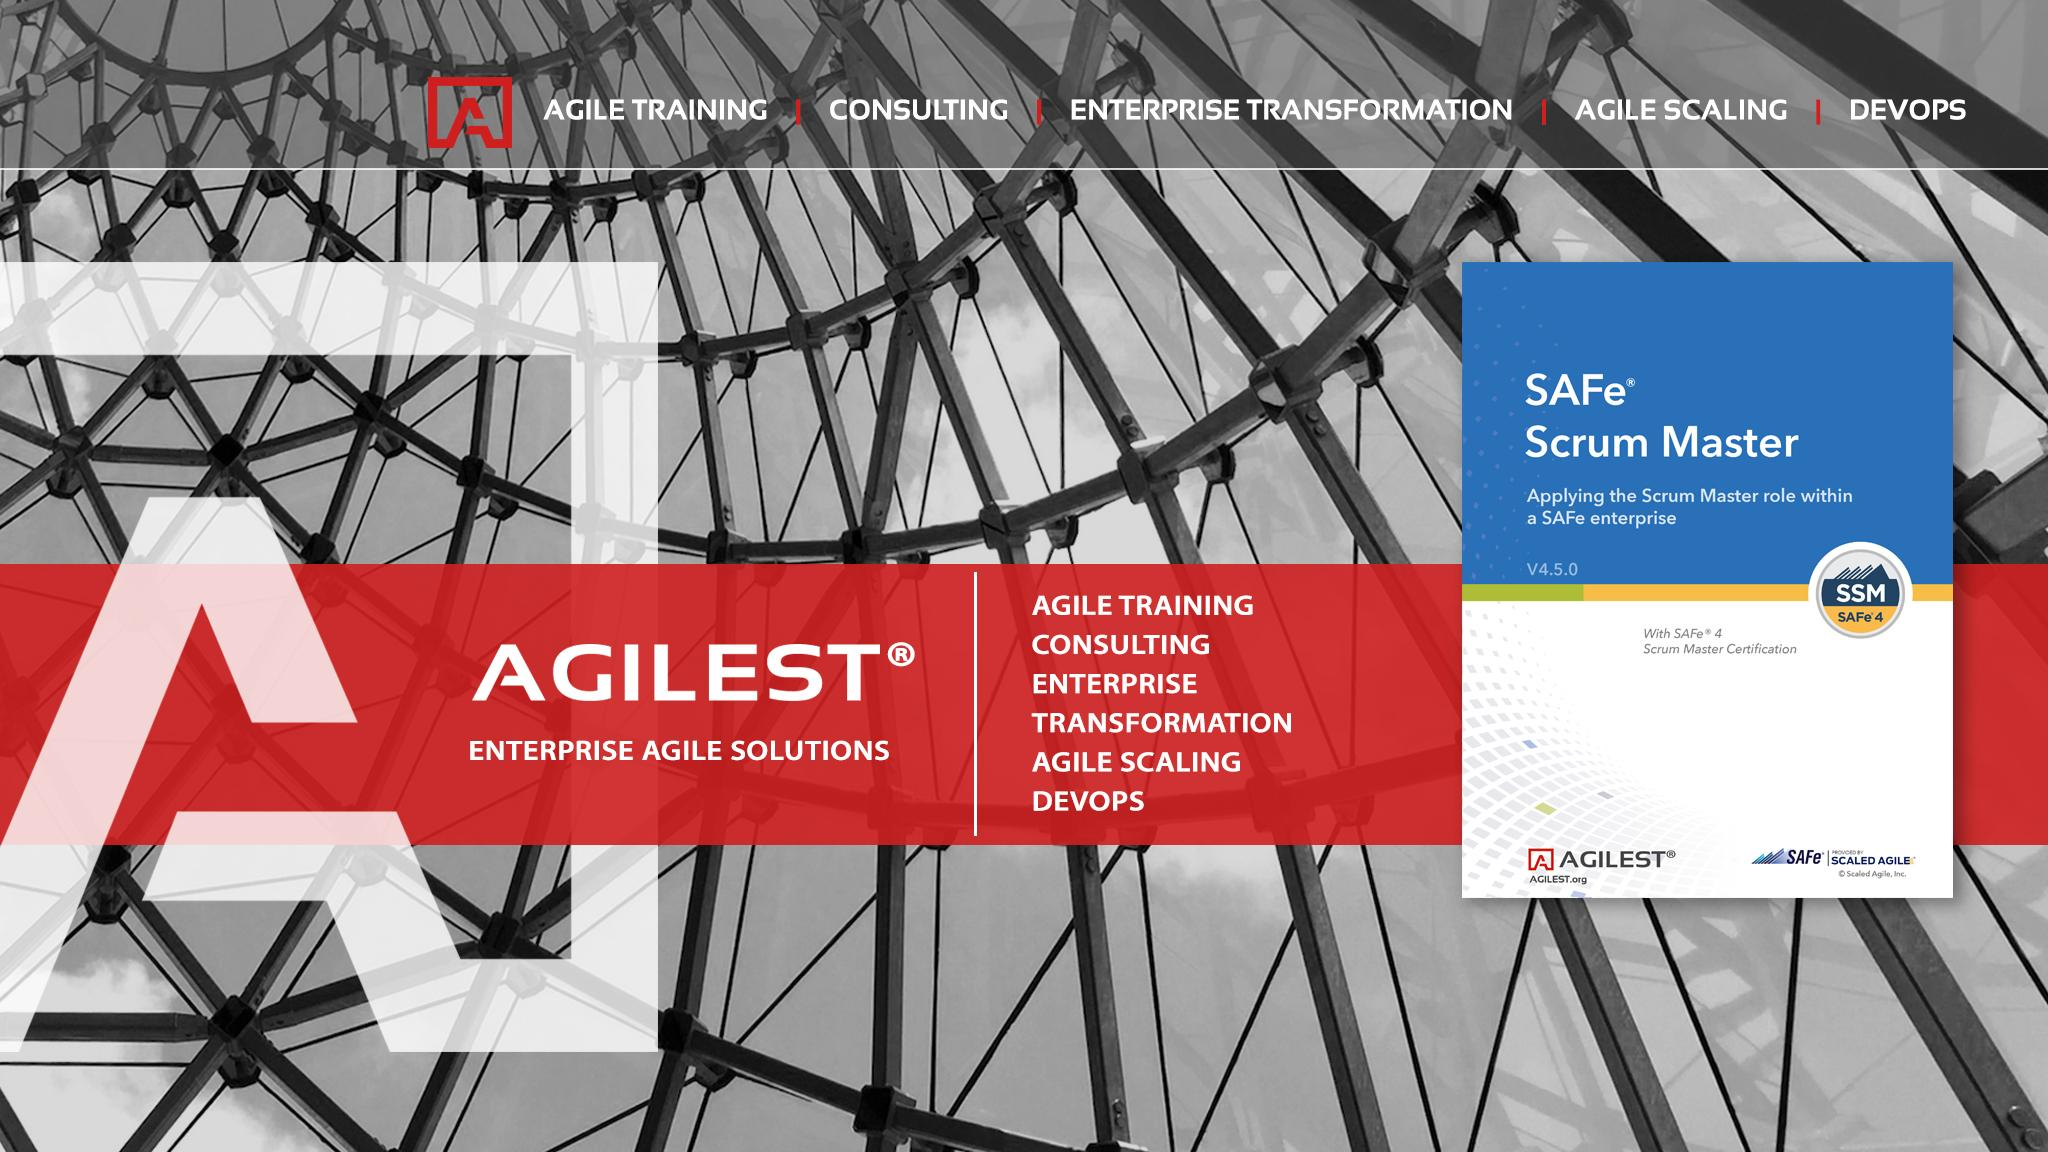 SAFe 4.5 Scrum Master Agile Certification Tra